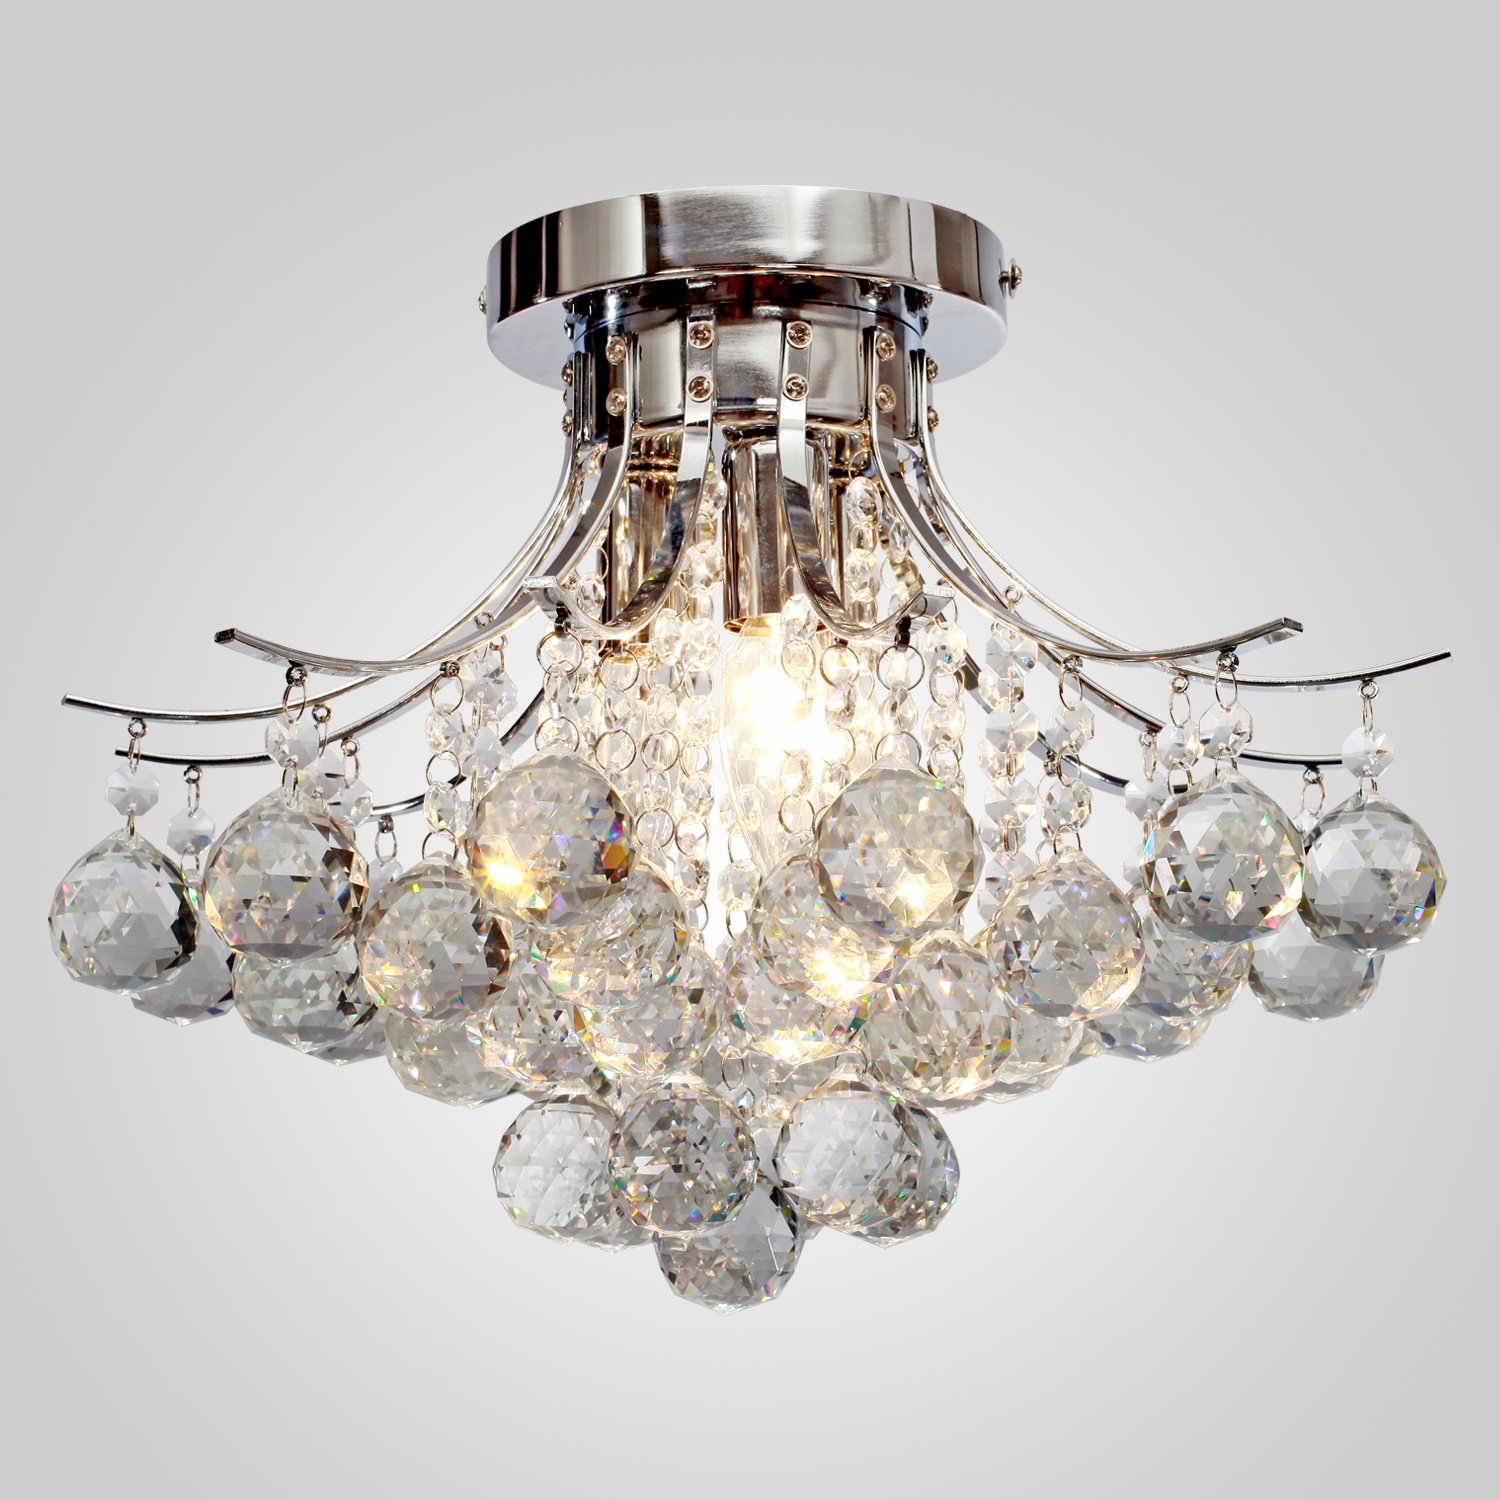 LightInTheBox 00218363 Chrome Finish Crystal Chandelier with 3